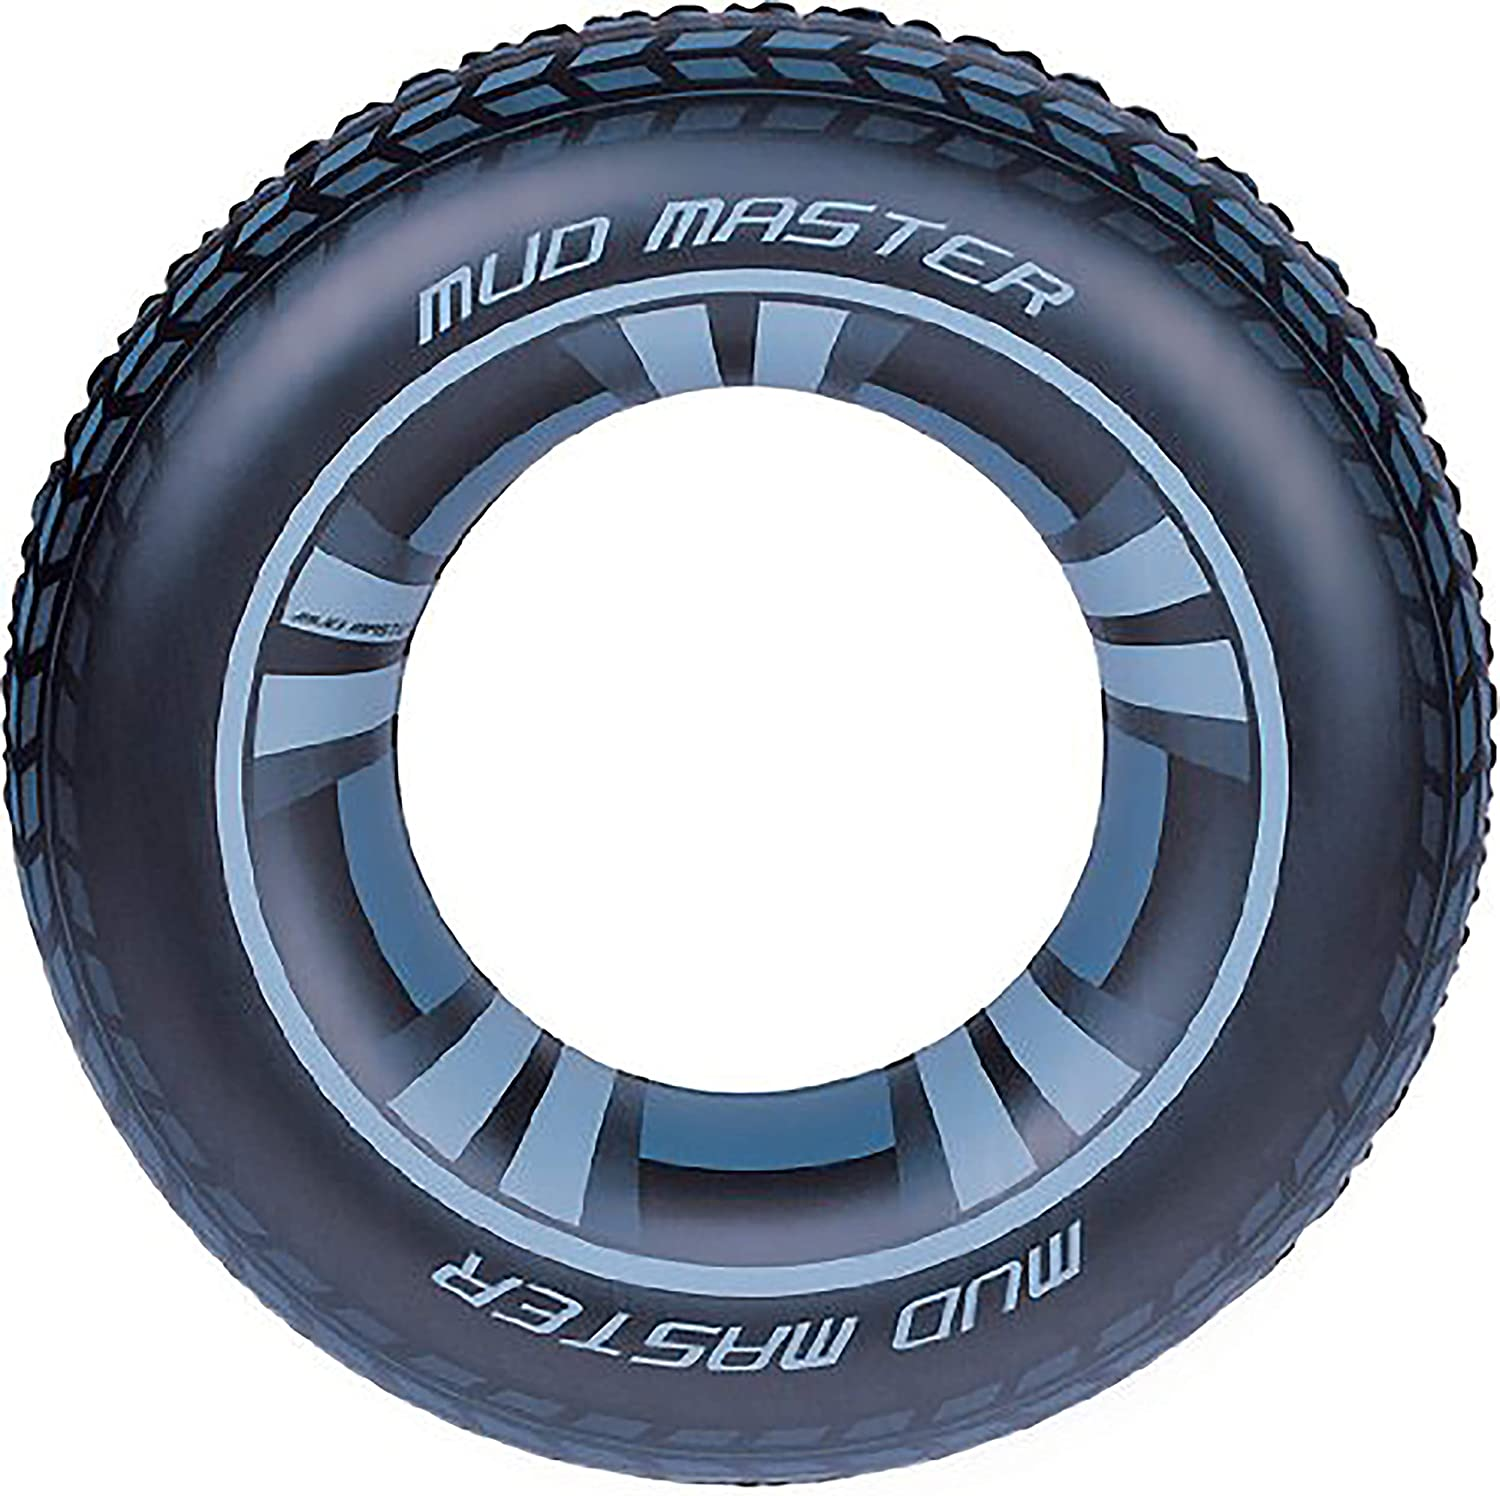 36 Mud Master Offroad Tire Inflatable Swim Tubes Best Way H2OGO 2 Pack